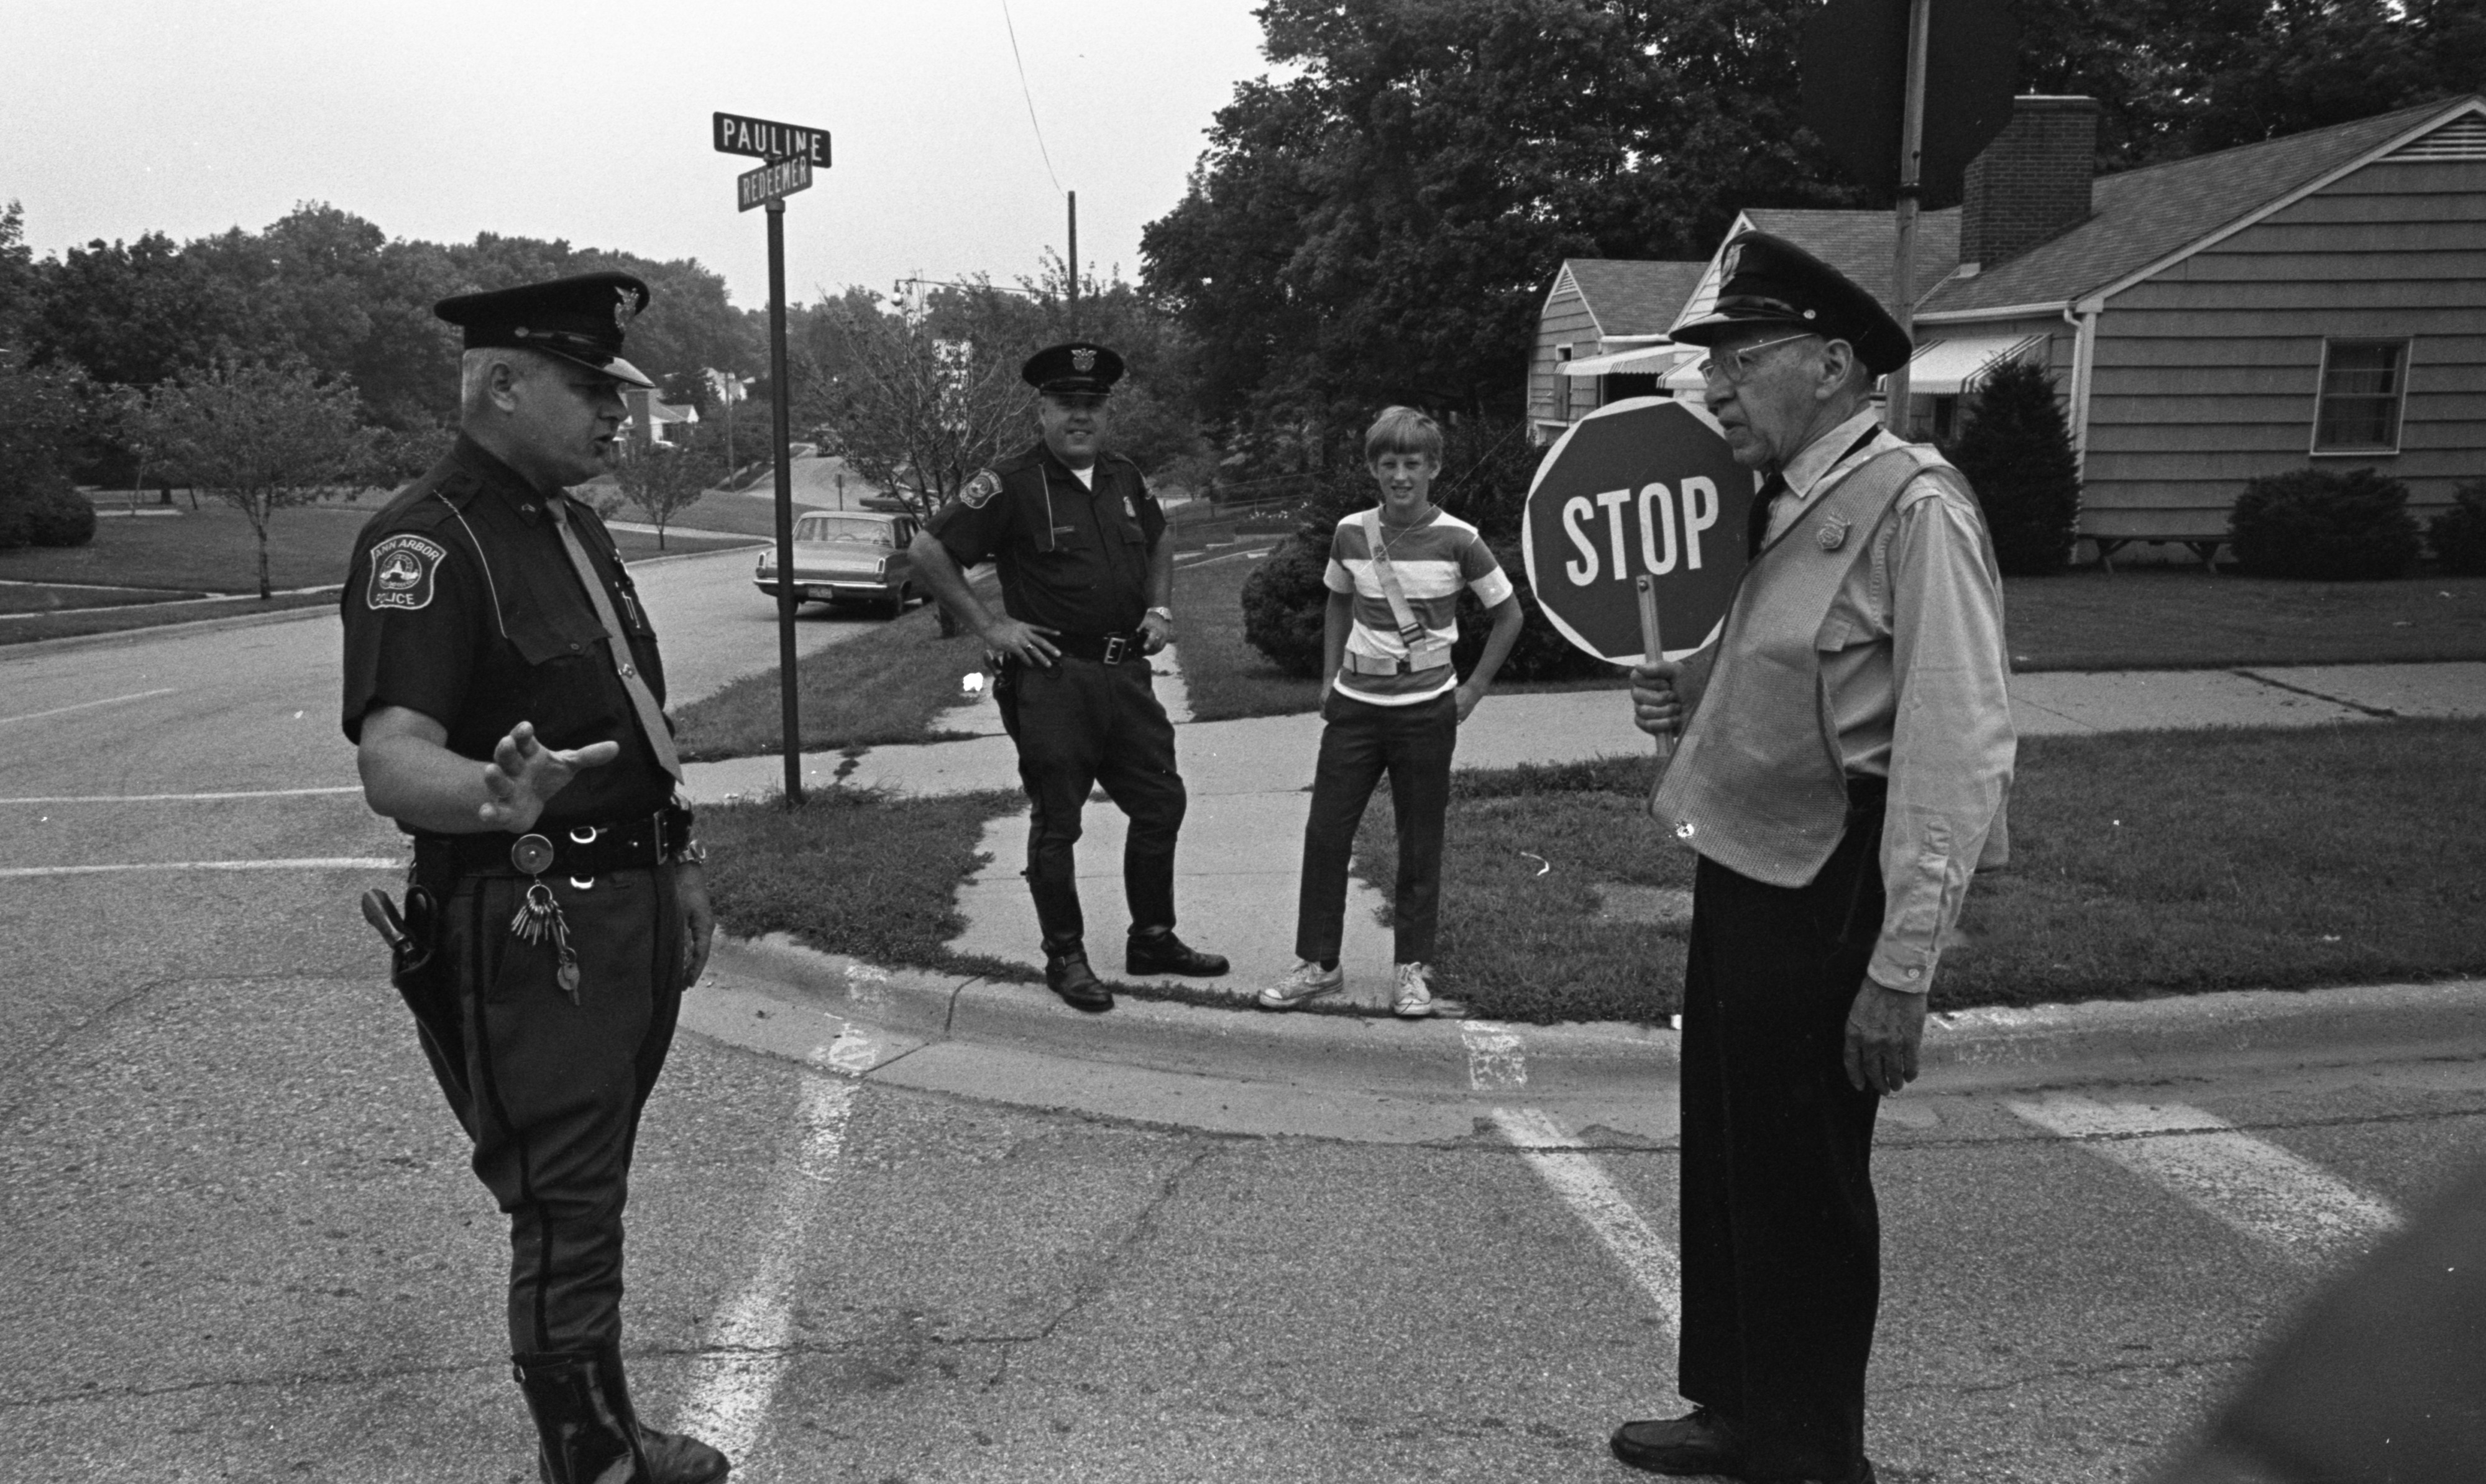 Ann Arbor Policemen Provide Back To School Tips For Crosswalk Safety At The Corner of Pauline & Redeemer, August 1970 image